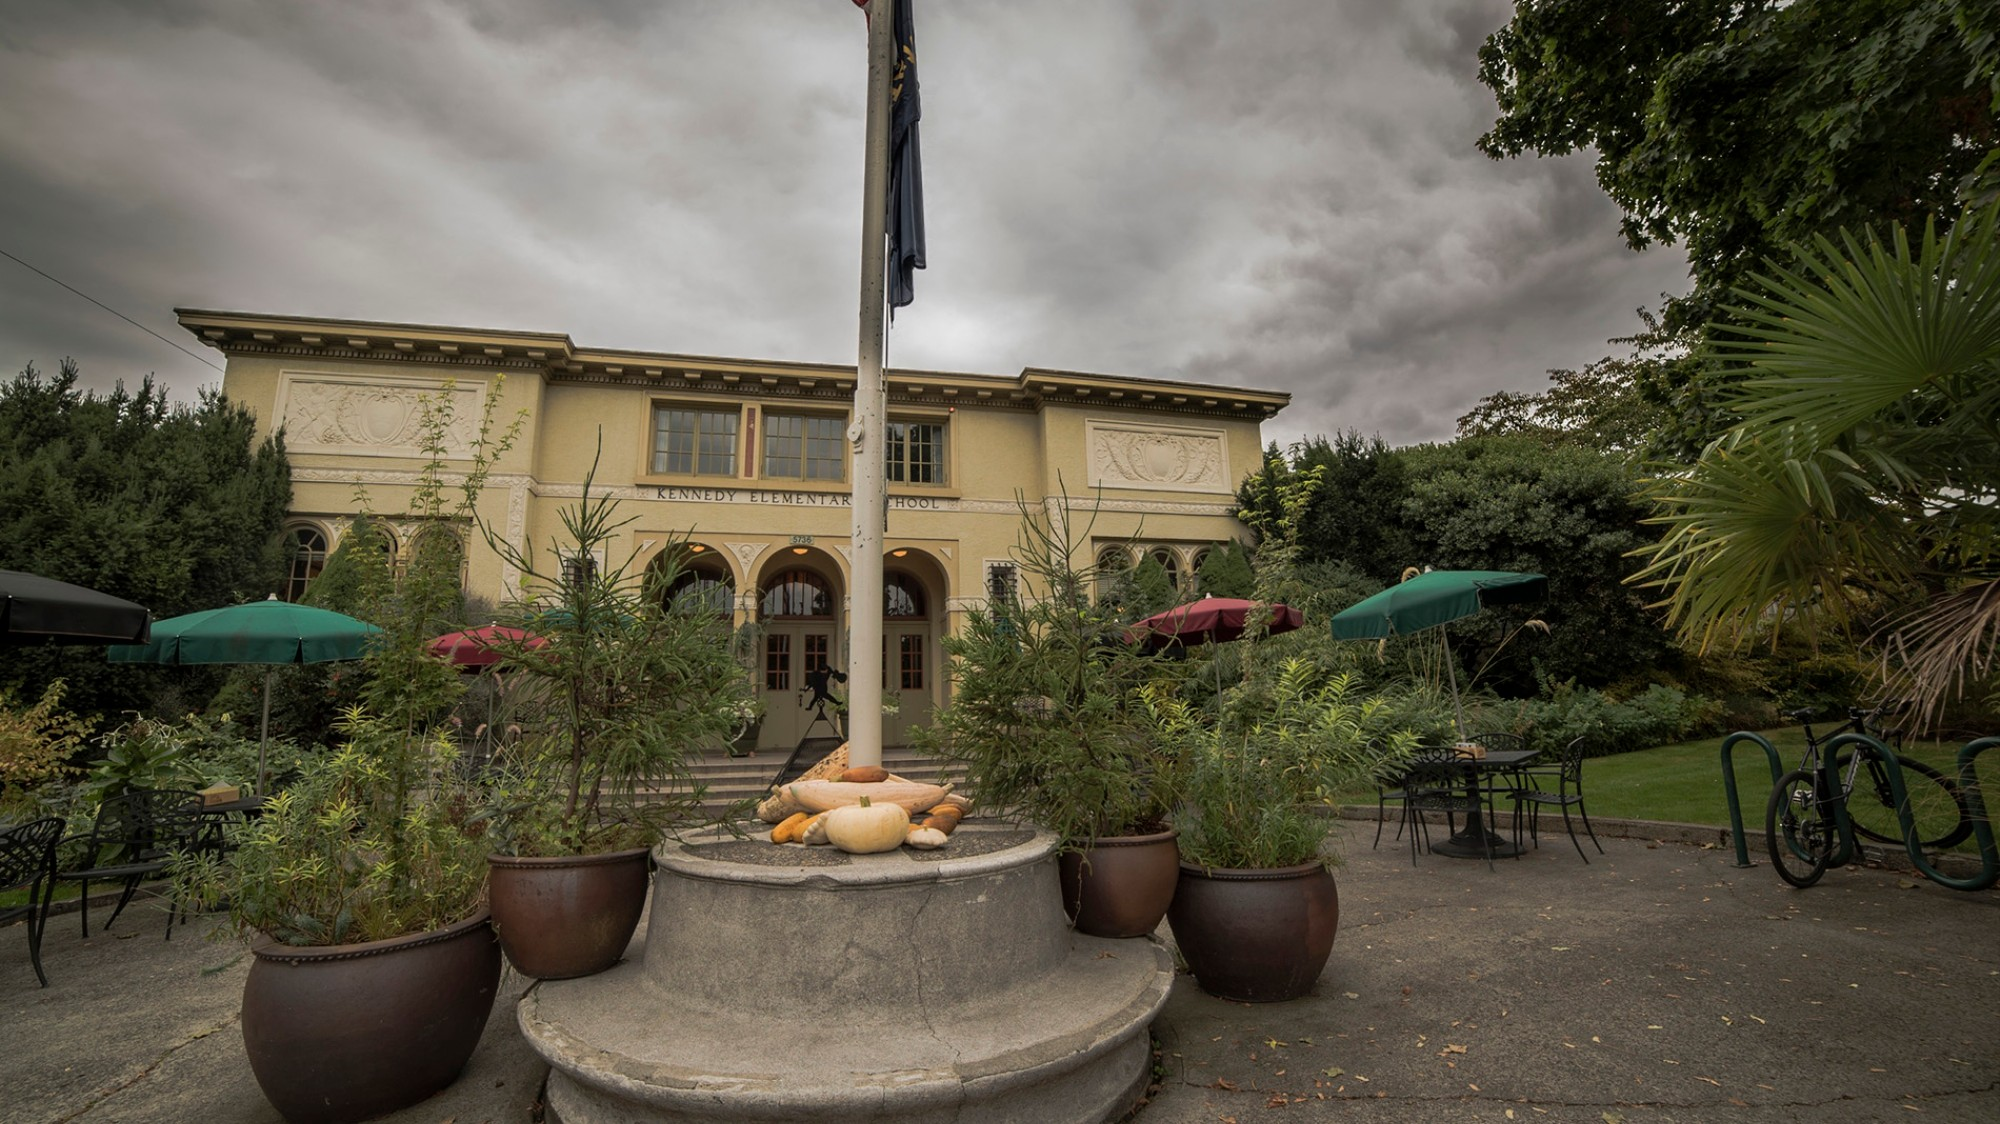 This Portland Elementary School-Turned-Restaurant Is Haunted